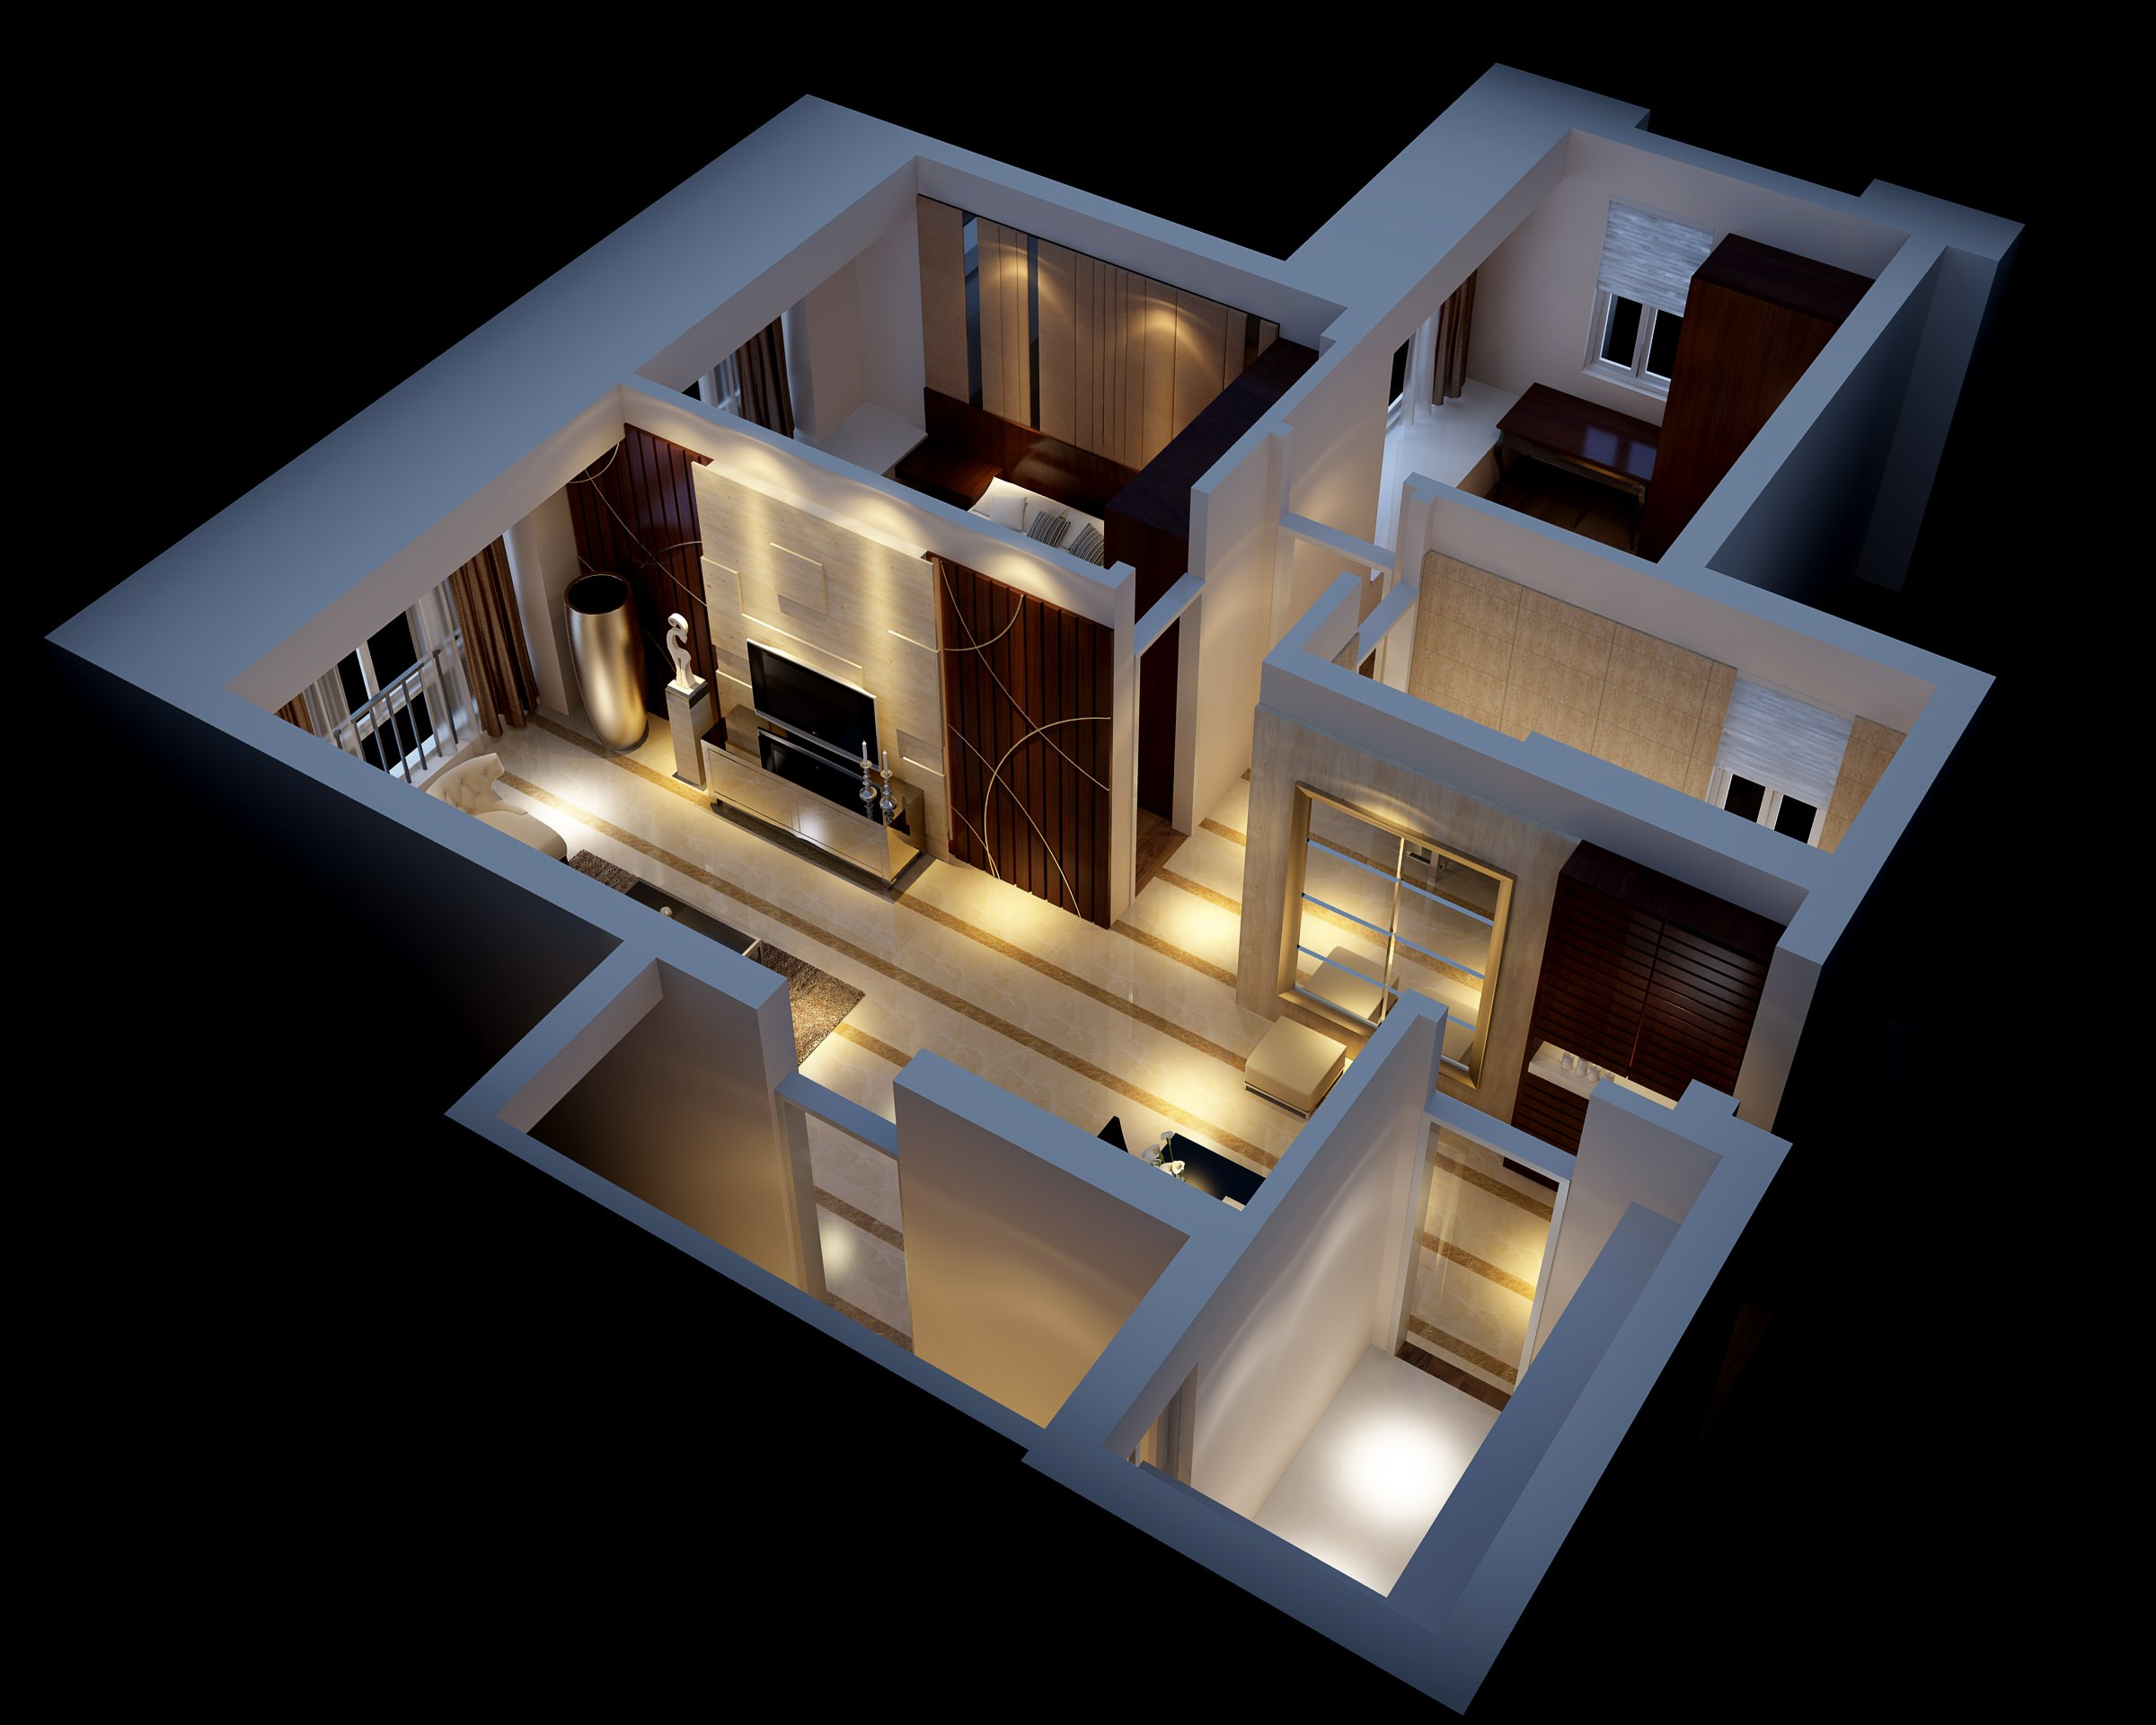 wonderful 3d model of house #4: modern house interior fully furnished 3d model max 1